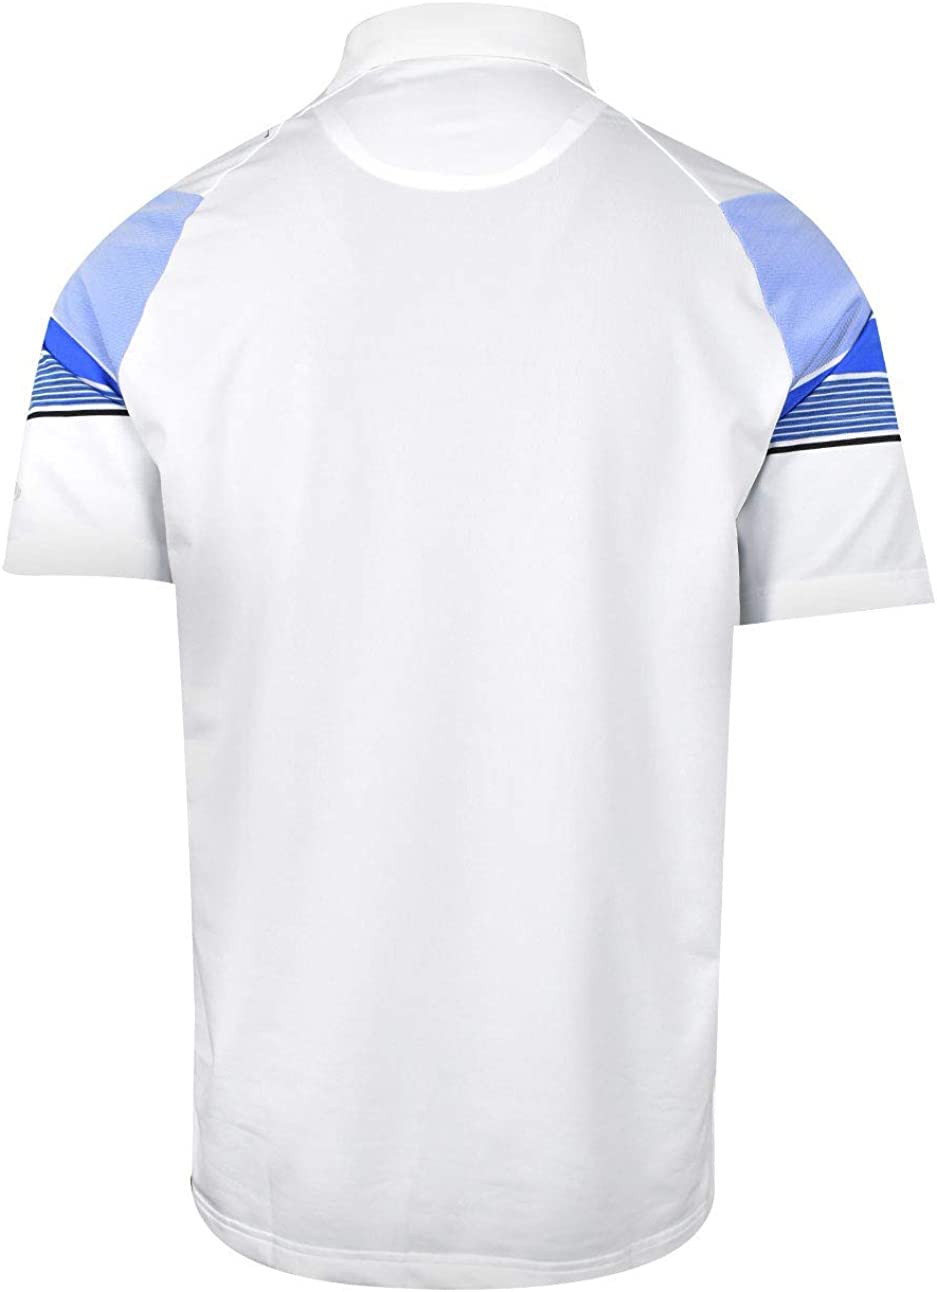 Now on sale Callaway Men's Performance Short Sleeve Stripe New products, world's highest quality popular! Shirt Polo